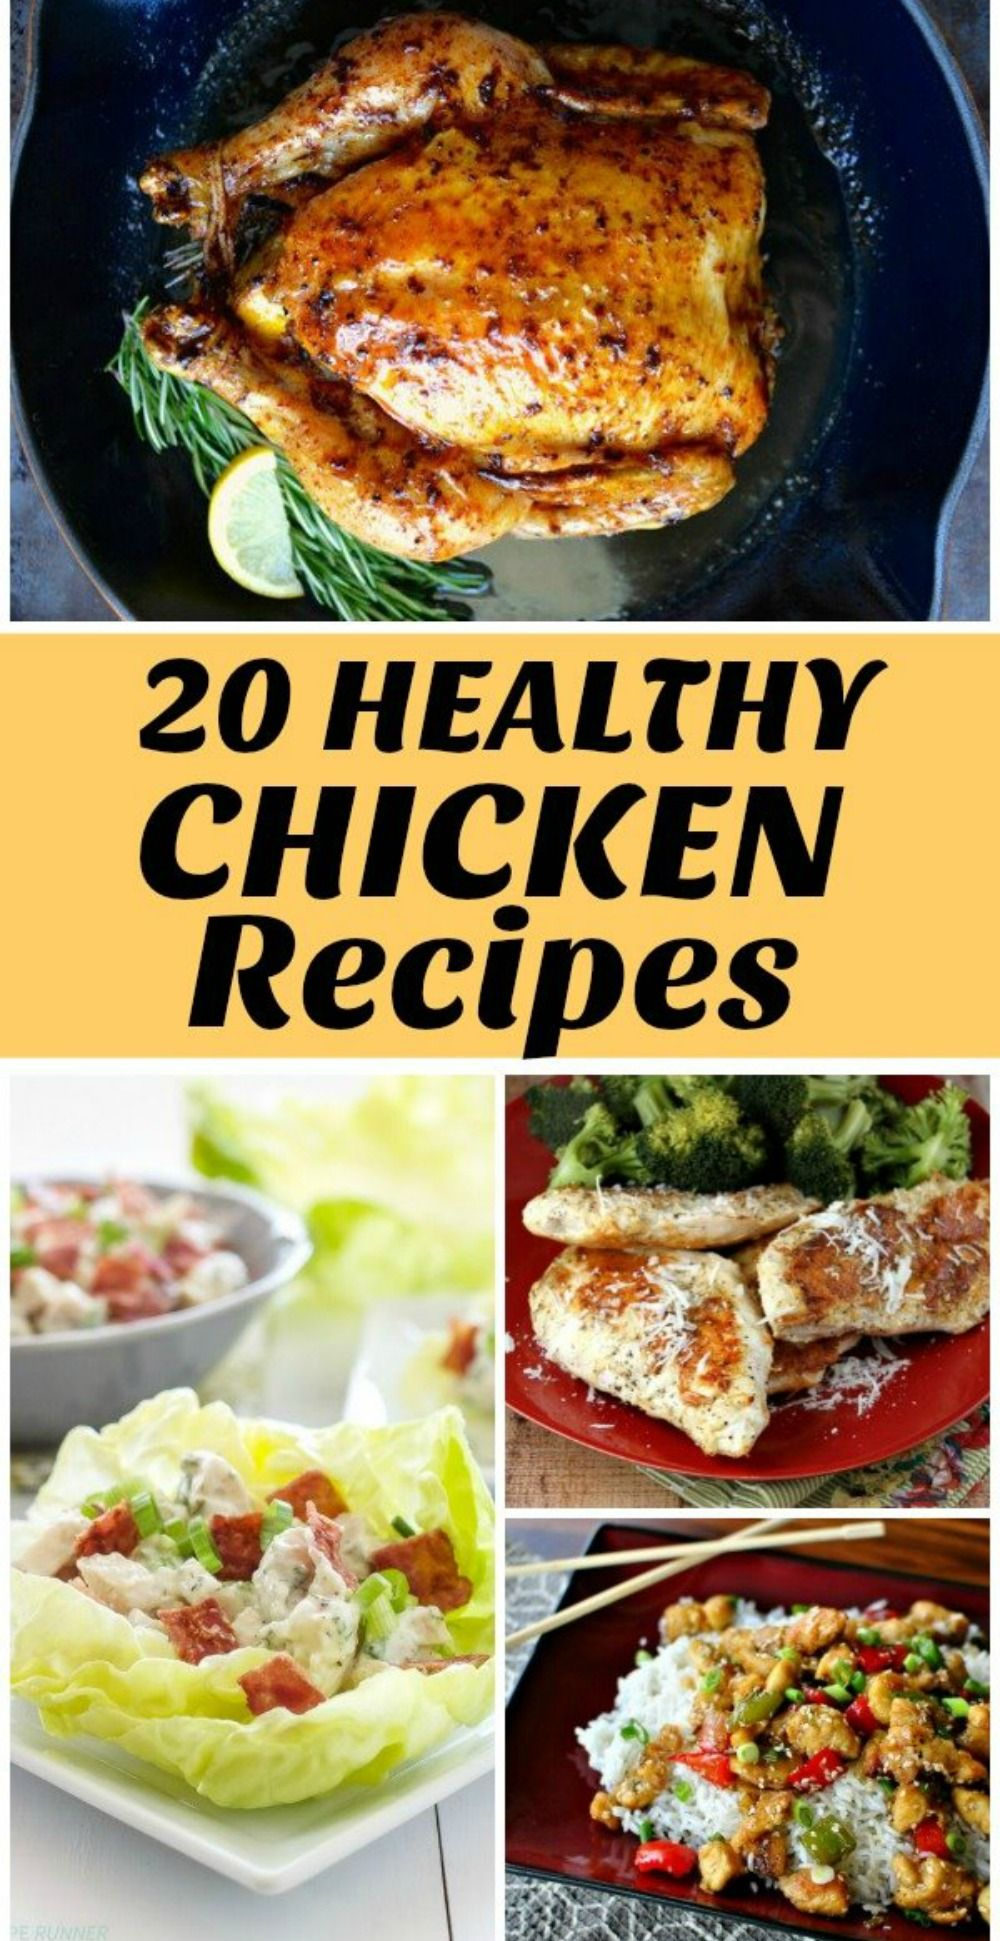 20 Healthy Chicken Dinner Recipes To Try This Year In 2021 Chicken Dinner Recipes Healthy Chicken Dinner Healthy Dinner Recipes Chicken